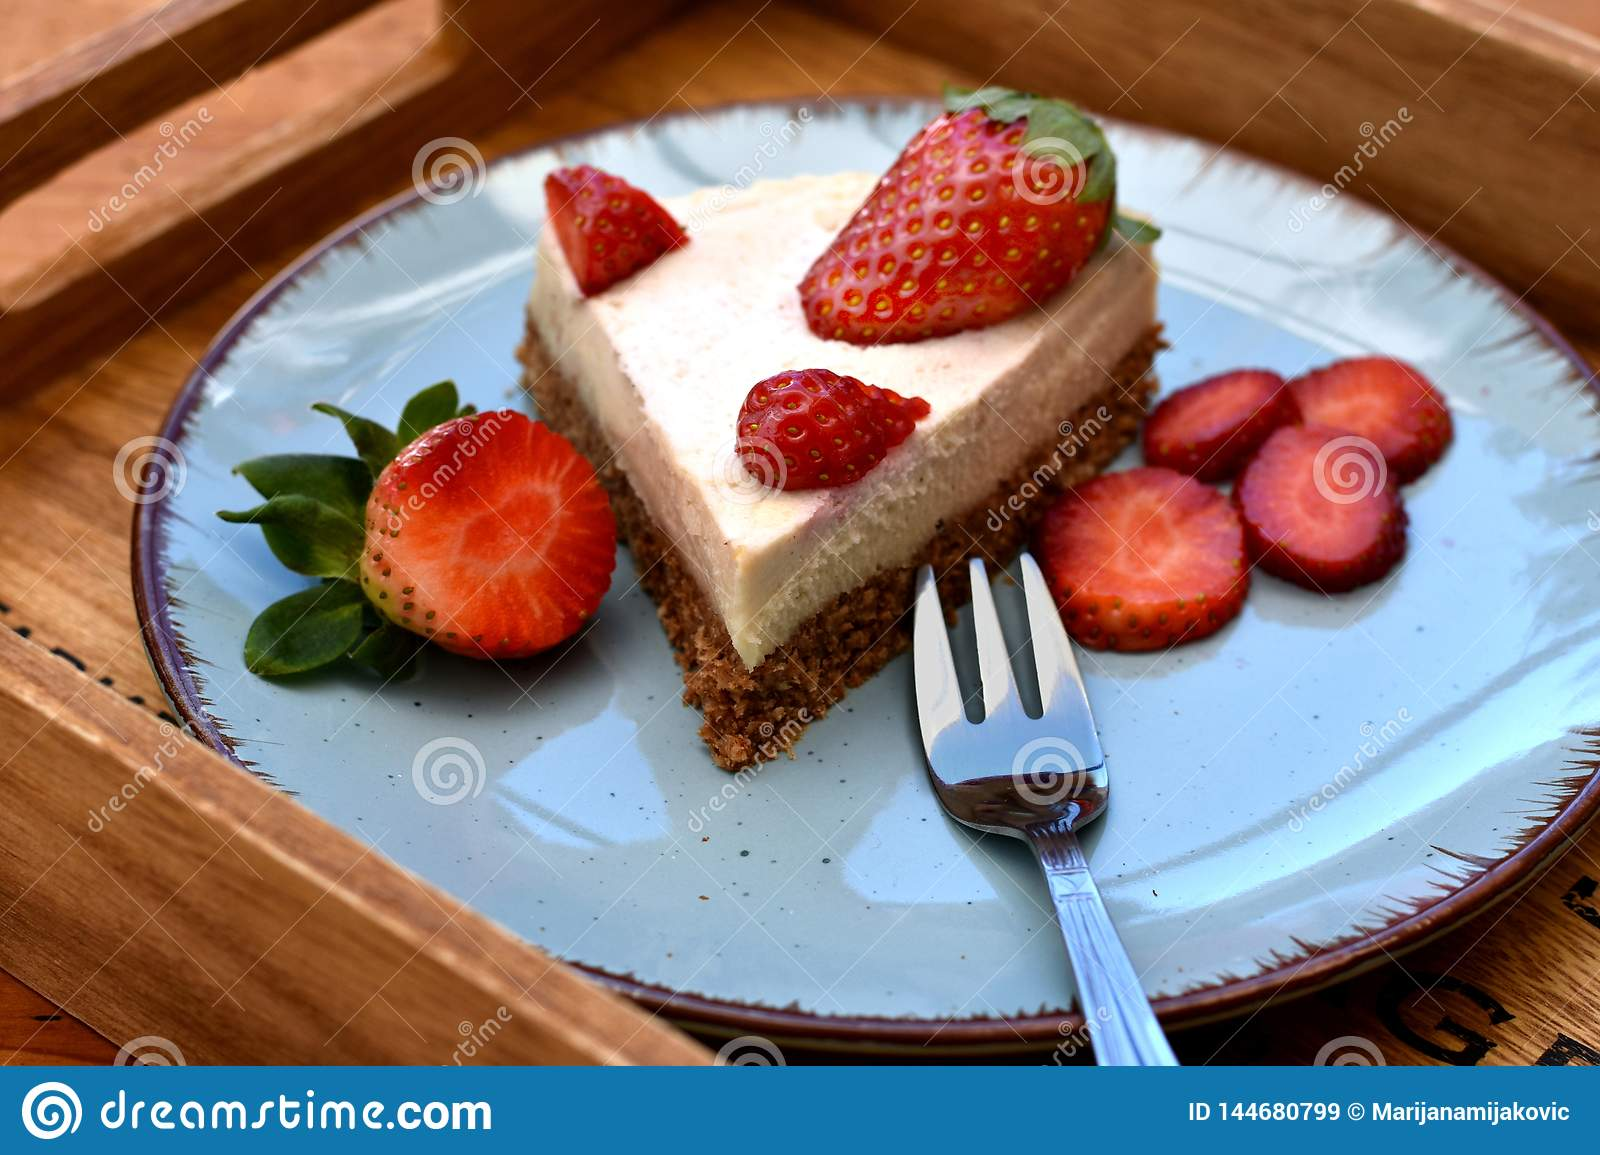 Slice of raw strawberry cake on blue plate